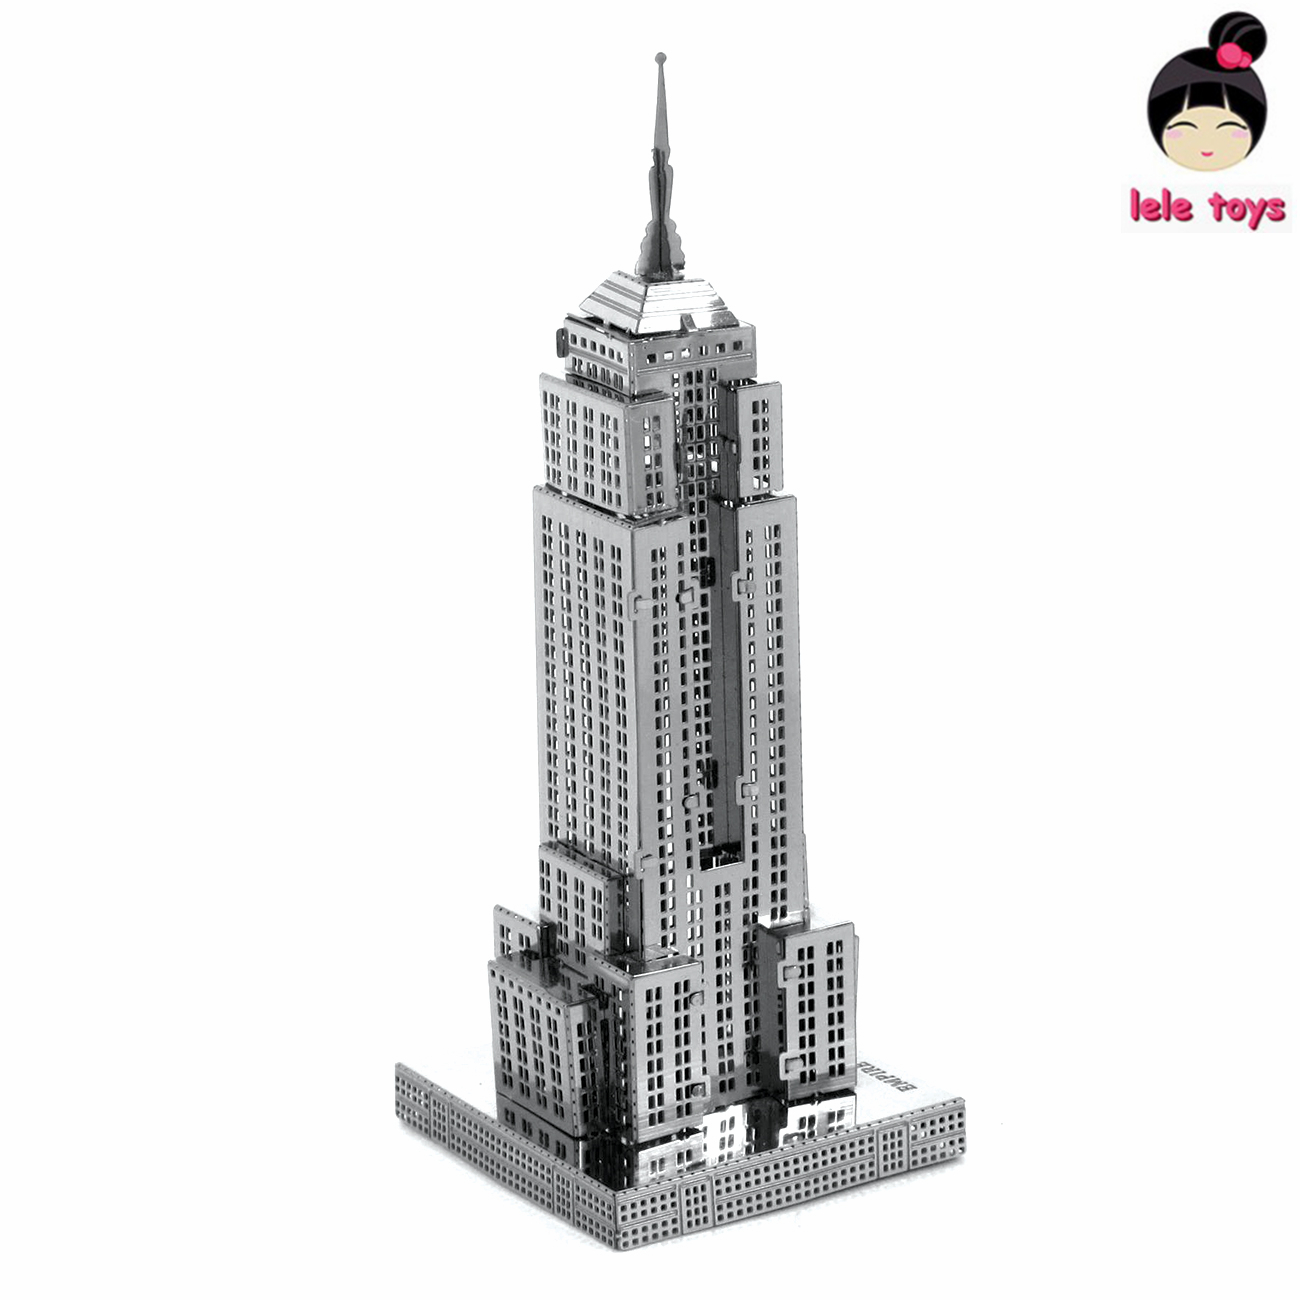 Construction Famous buildings over the world 3D Metal model Puzzles EMPIRE STATE BUILDING Chinese Metal Earth stainless steel(China (Mainland))